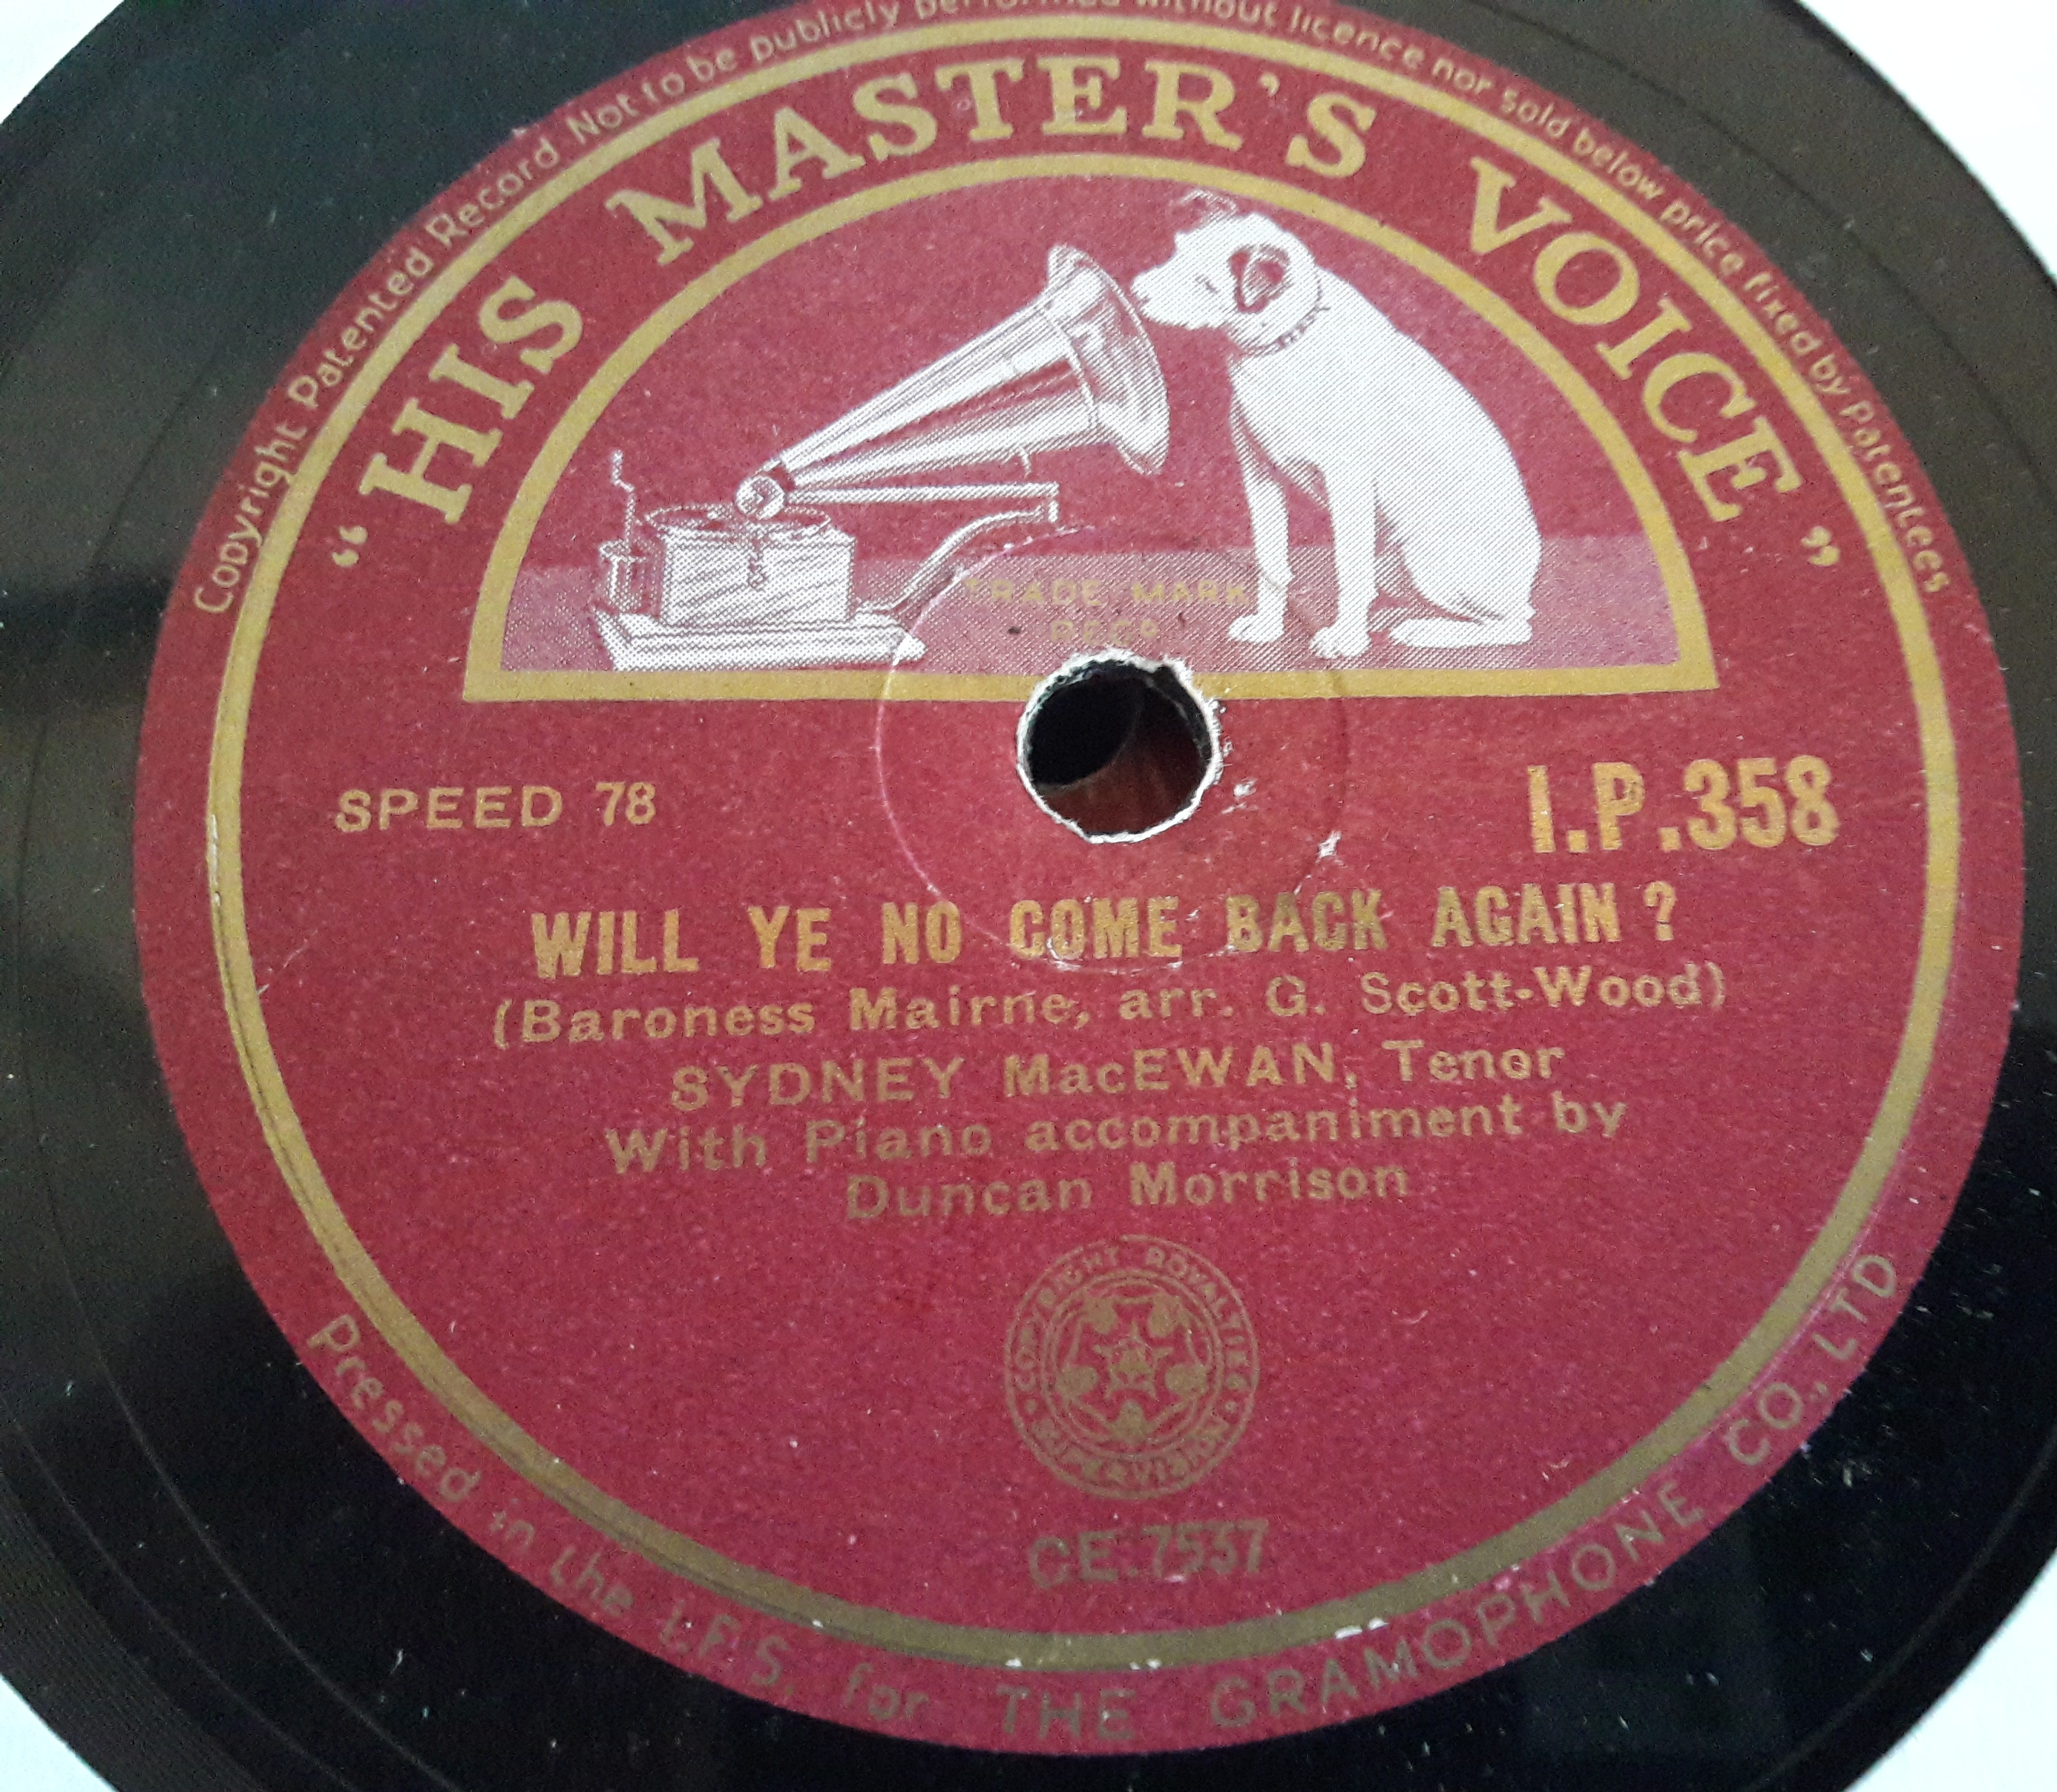 Sydney MacEwan - Loch Lomond - HMV IP.358 Irish E